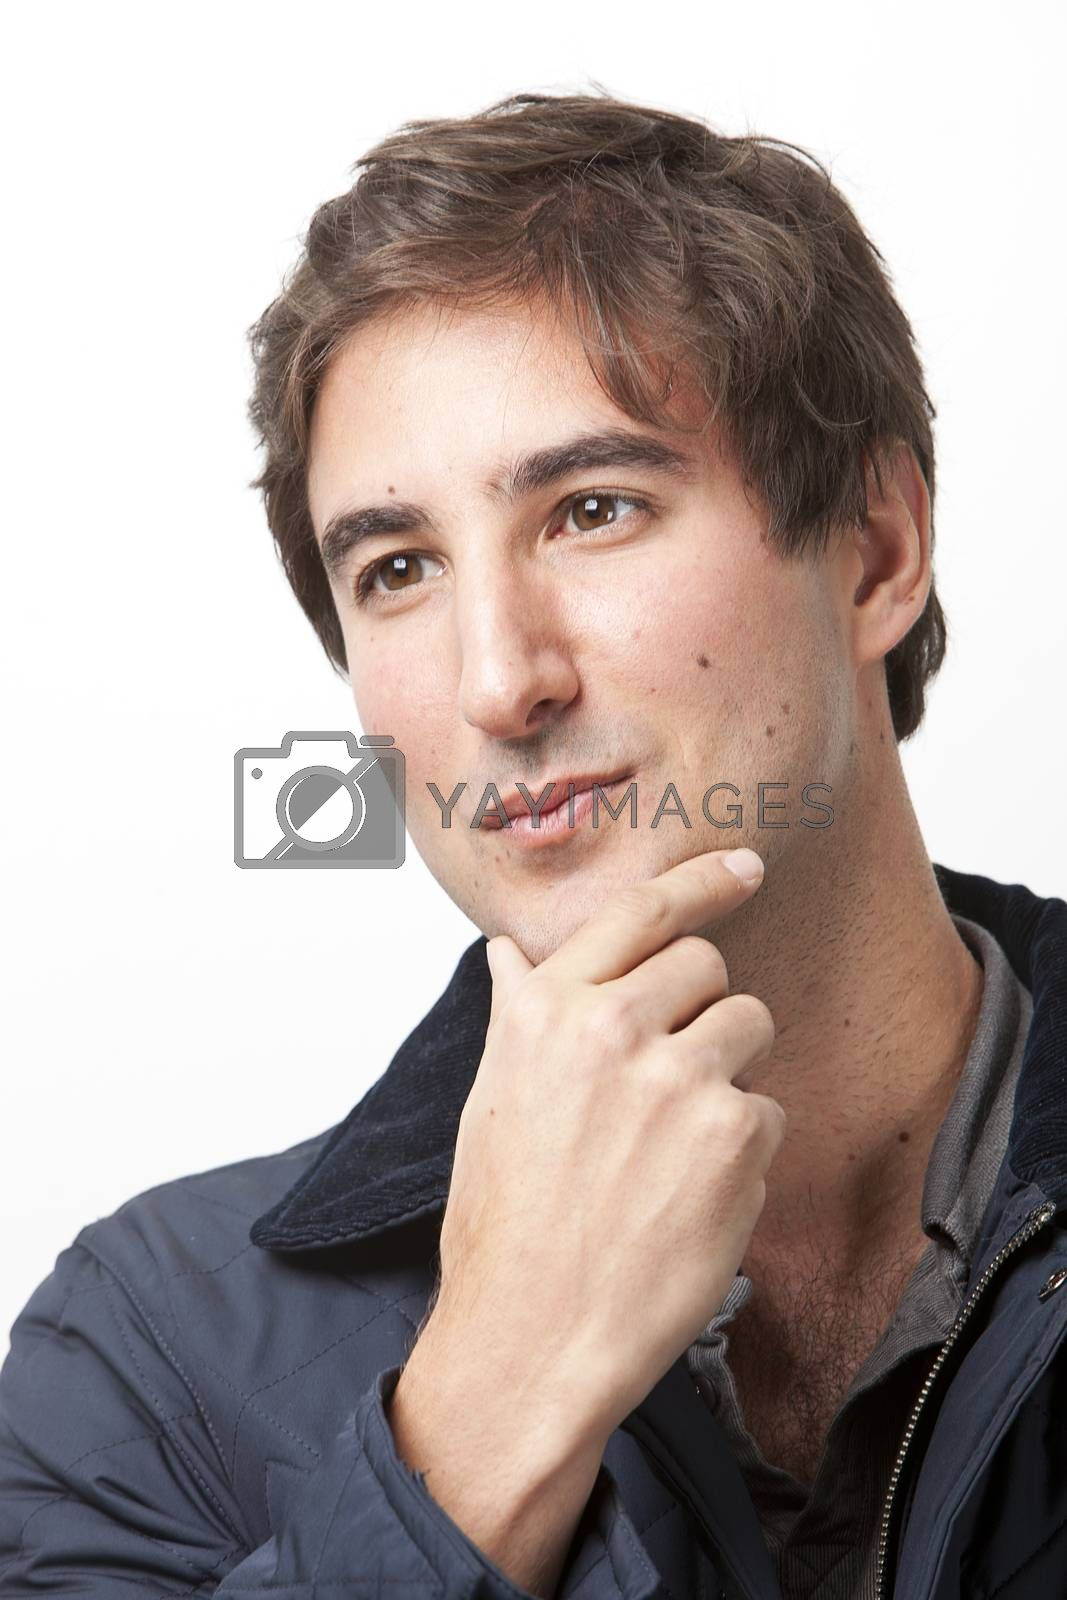 Close-up of young man thinking against white background